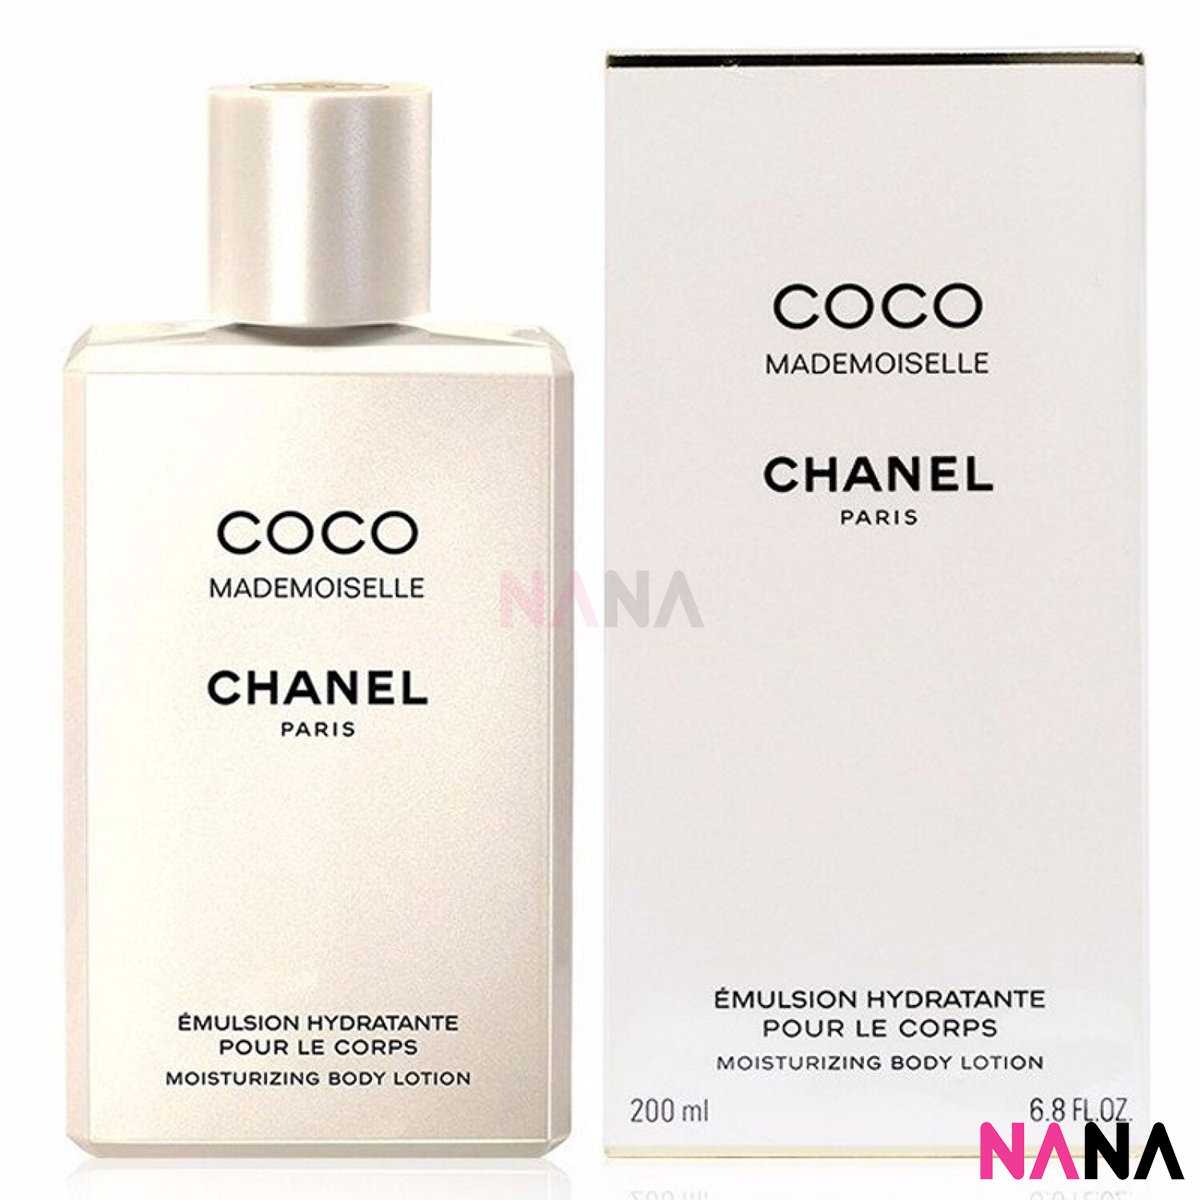 CoCo Mademoiselle Moisturizing Body Lotion 200ml